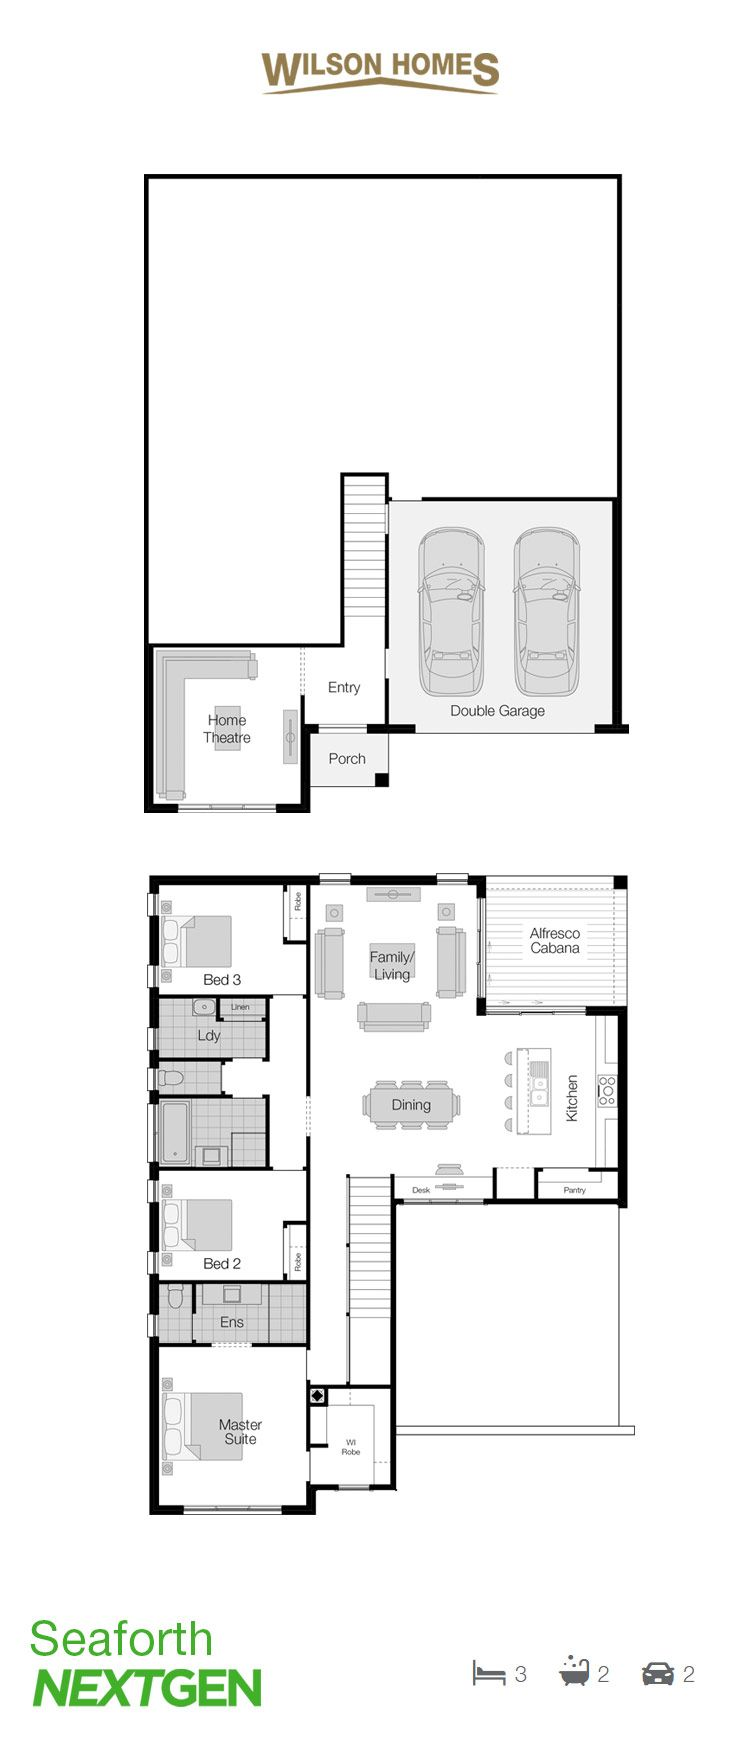 SeaforthFloor Plan by Wilson Homes - NextGen Portfolio - This split level design comfortably sits in harmony with its surrounds and delivers functional living solutions which the whole family can enjoy. Learn more about this home athttp://ow.ly/lXlO30geJ24 #splitlevelhome #wilsonhomes